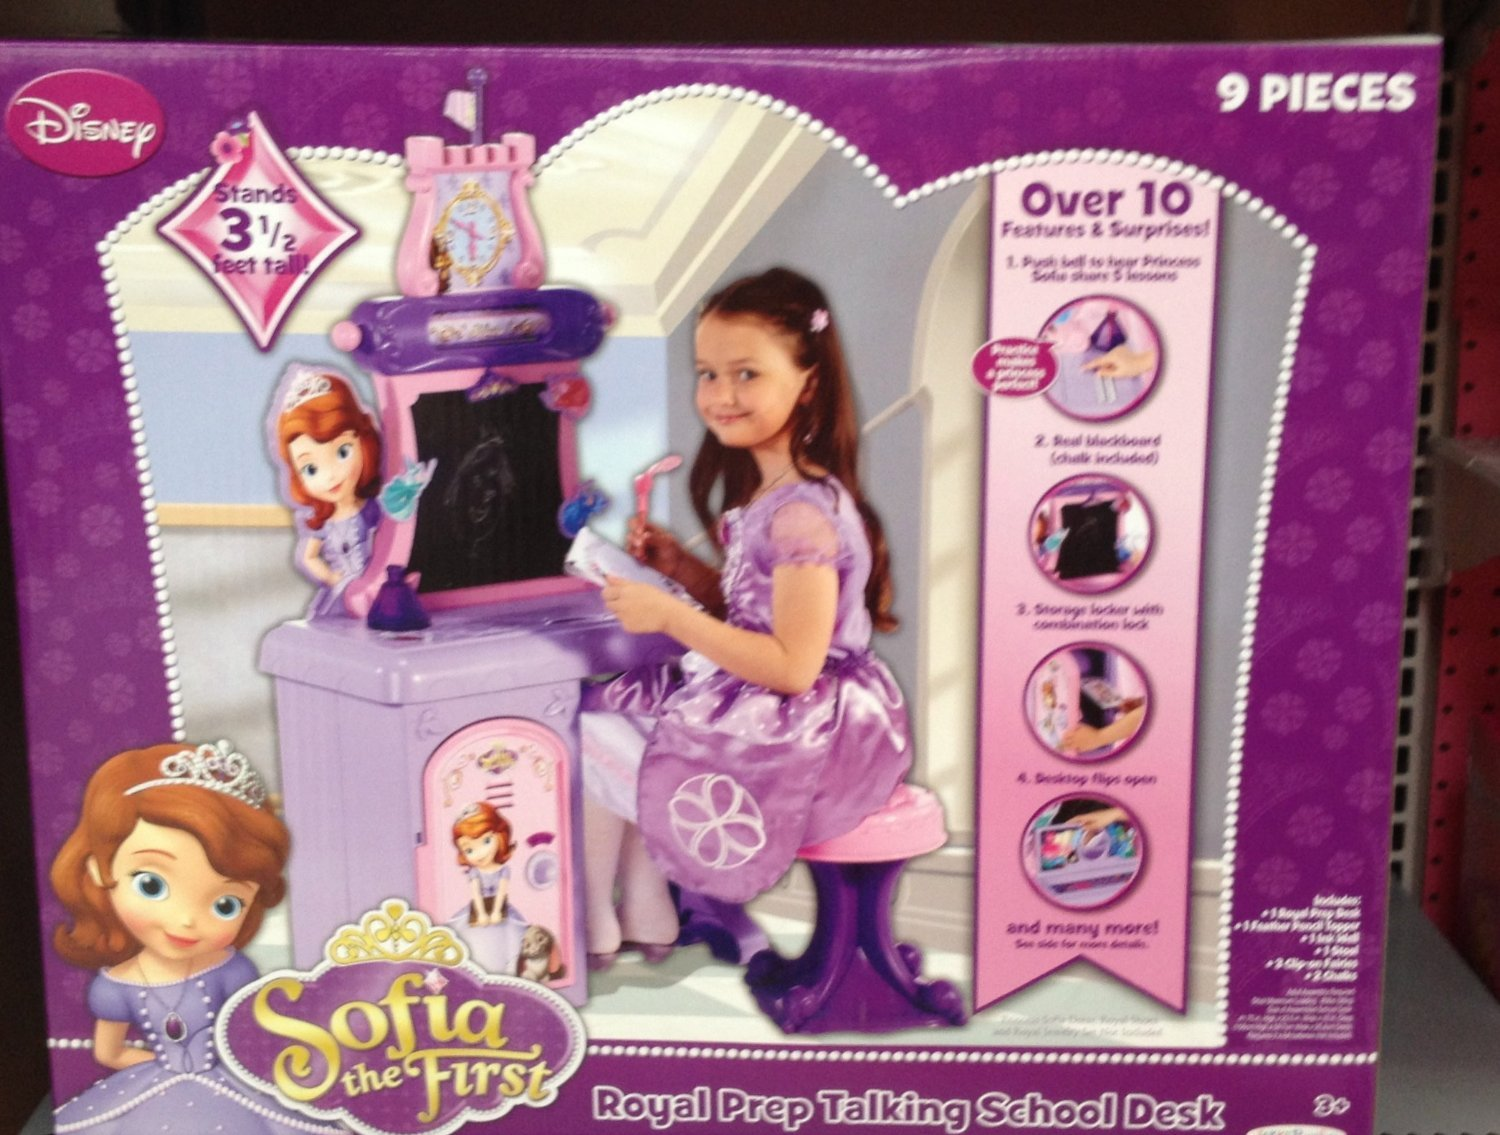 Sofia The First Royal Prep Talking School Desk